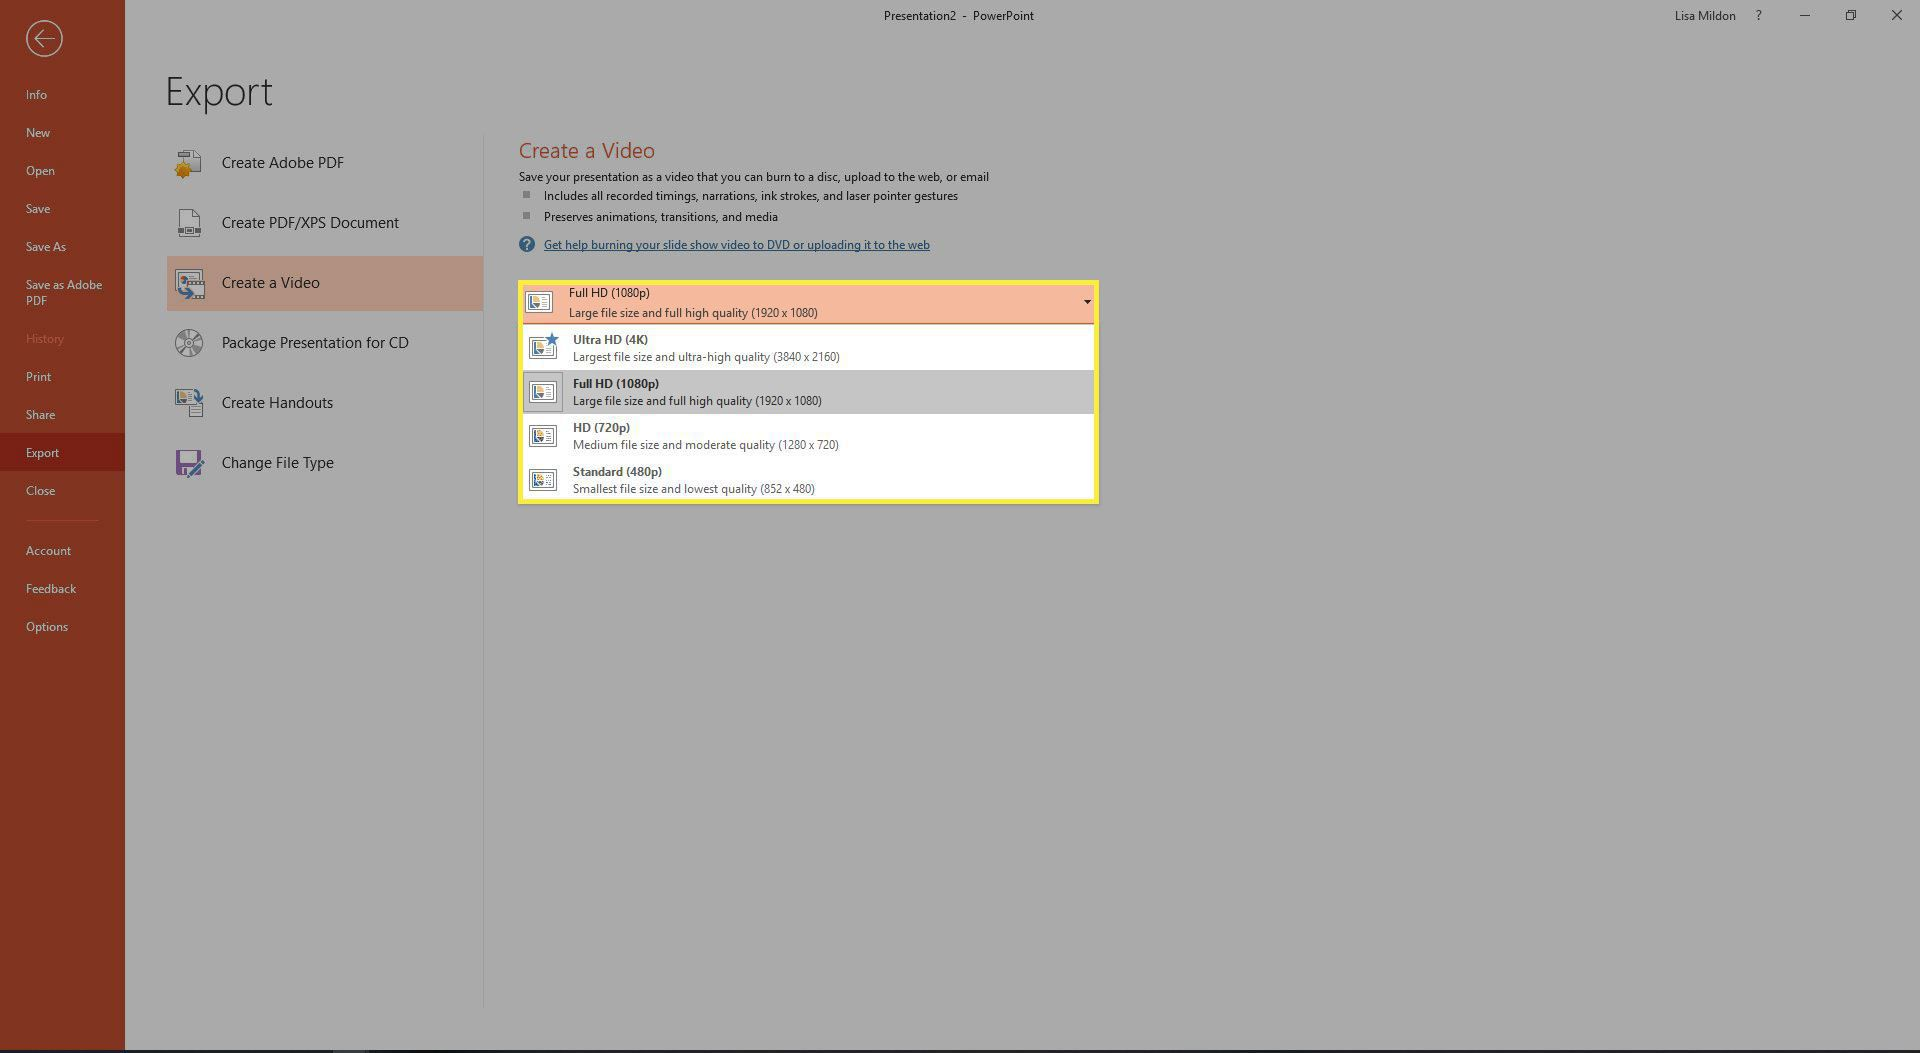 Video quality settings in PowerPoint